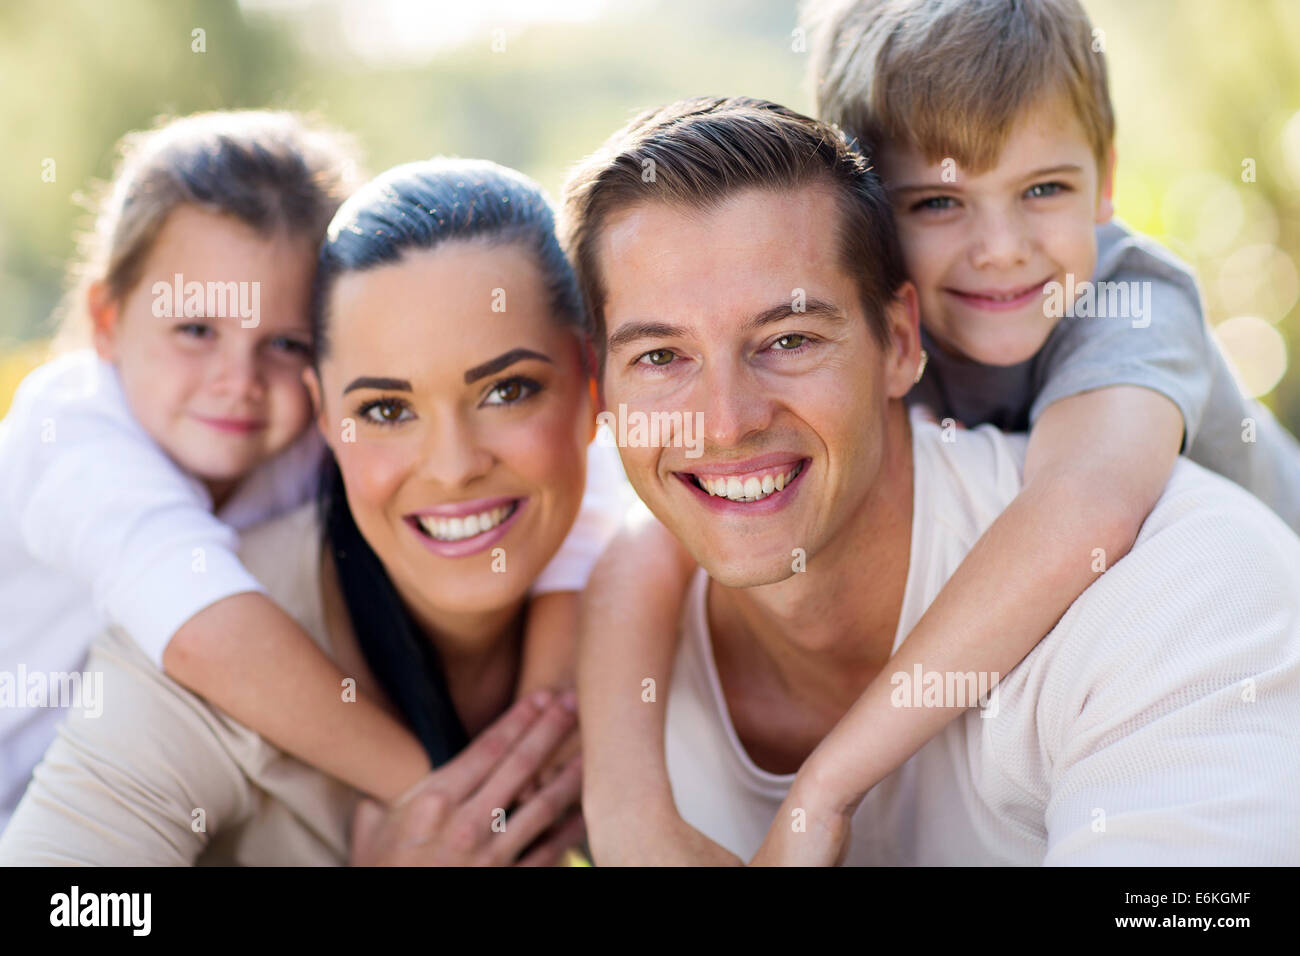 loving young family having fun together outdoors Stock Photo